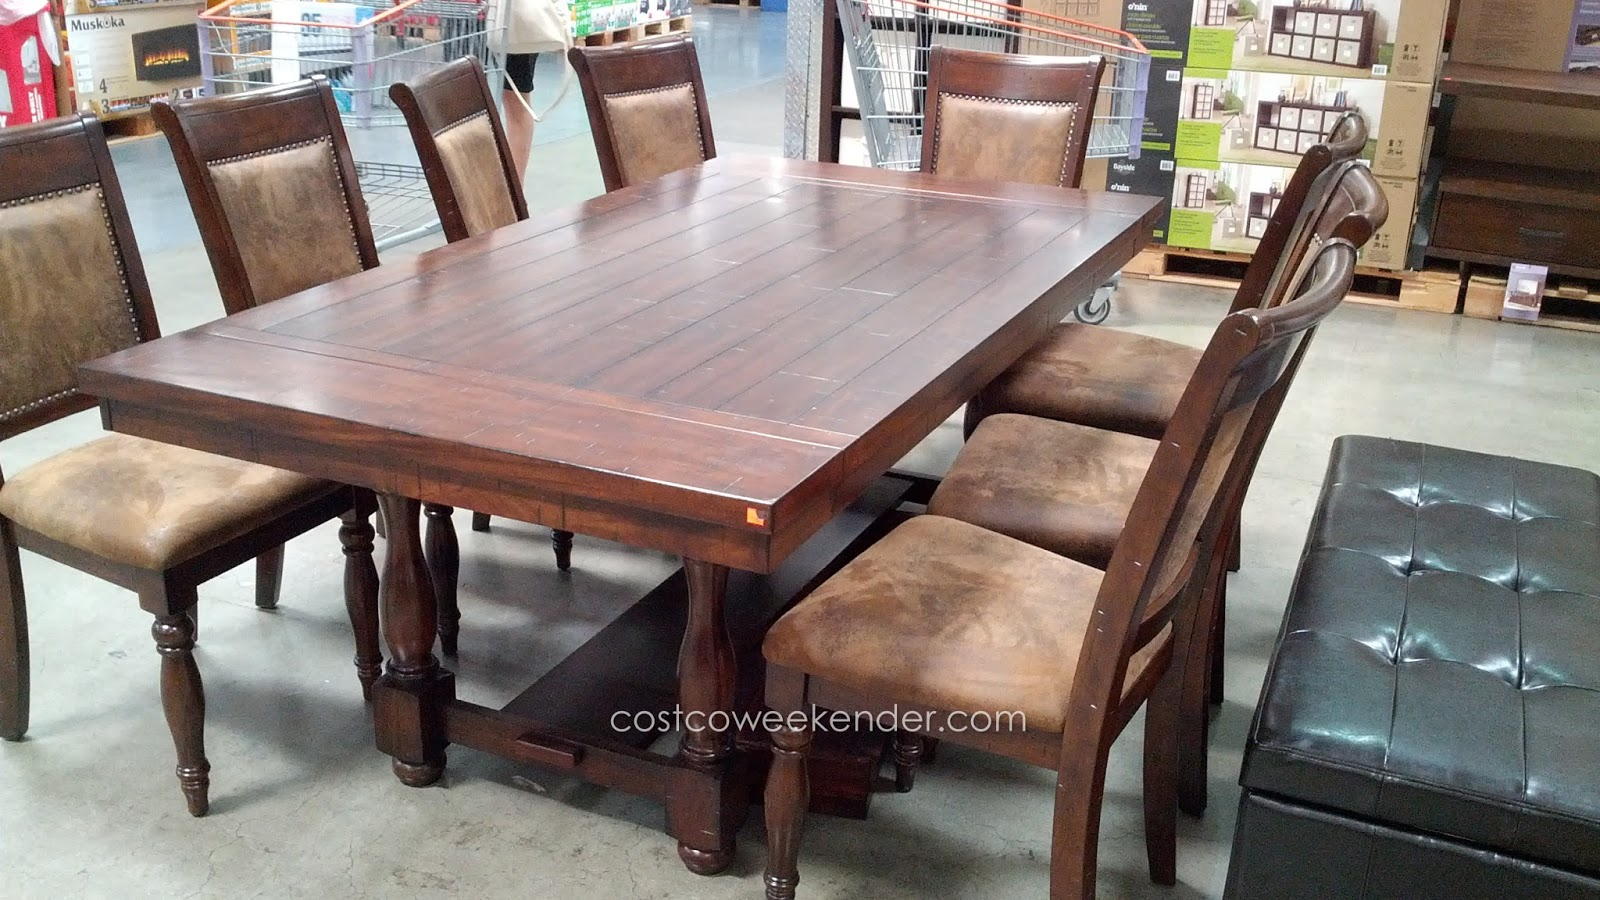 Hillsdale tremonte 9 piece dining set costco weekender - Costco dining room set ...